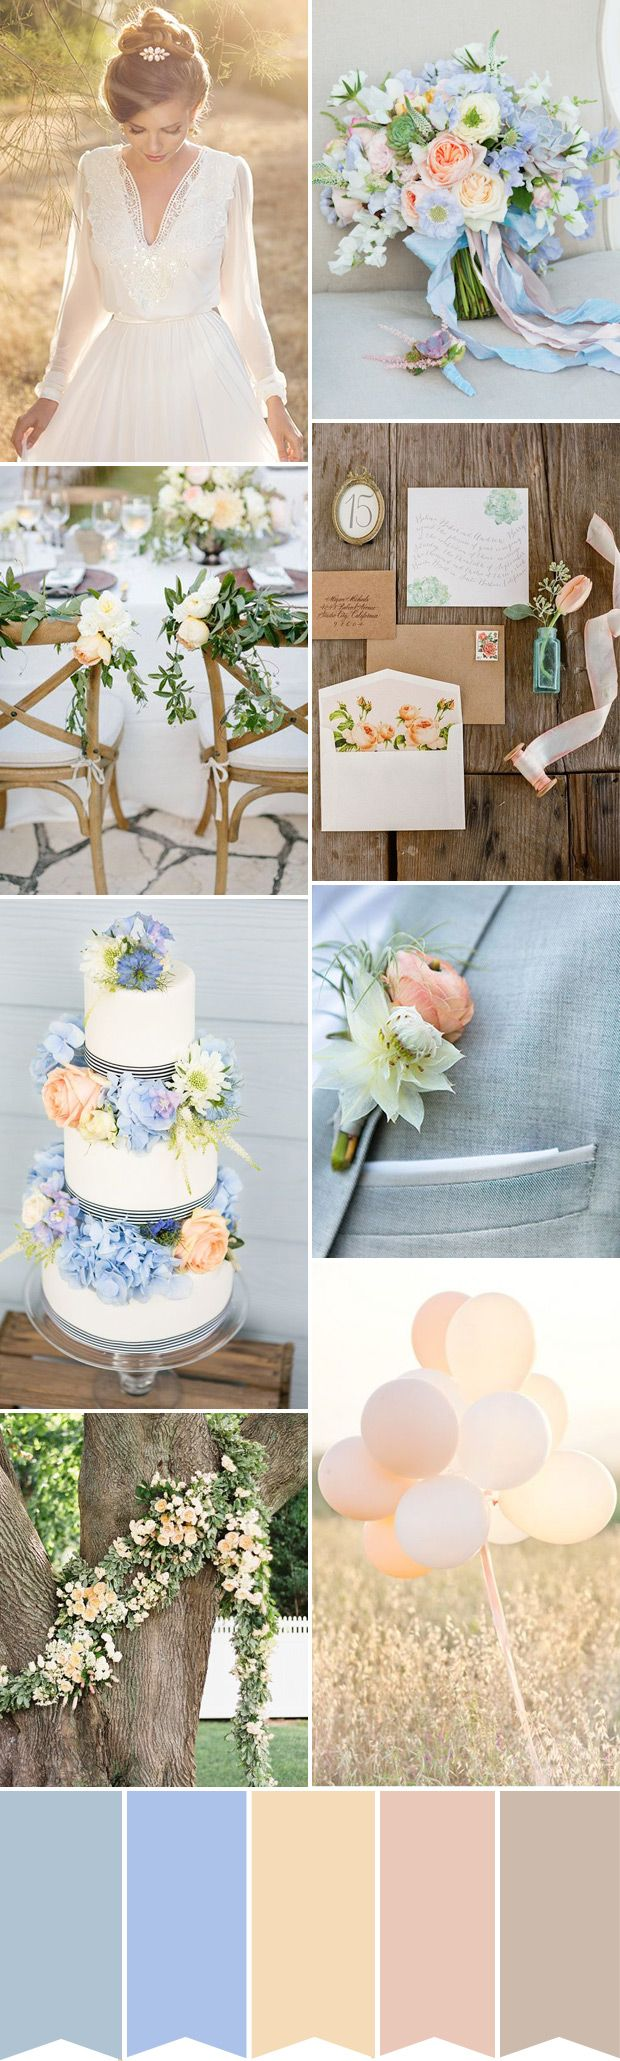 Wedding decoration ideas peach  A Pretty Palette for a Blue and Peach Wedding  Blue wedding colors